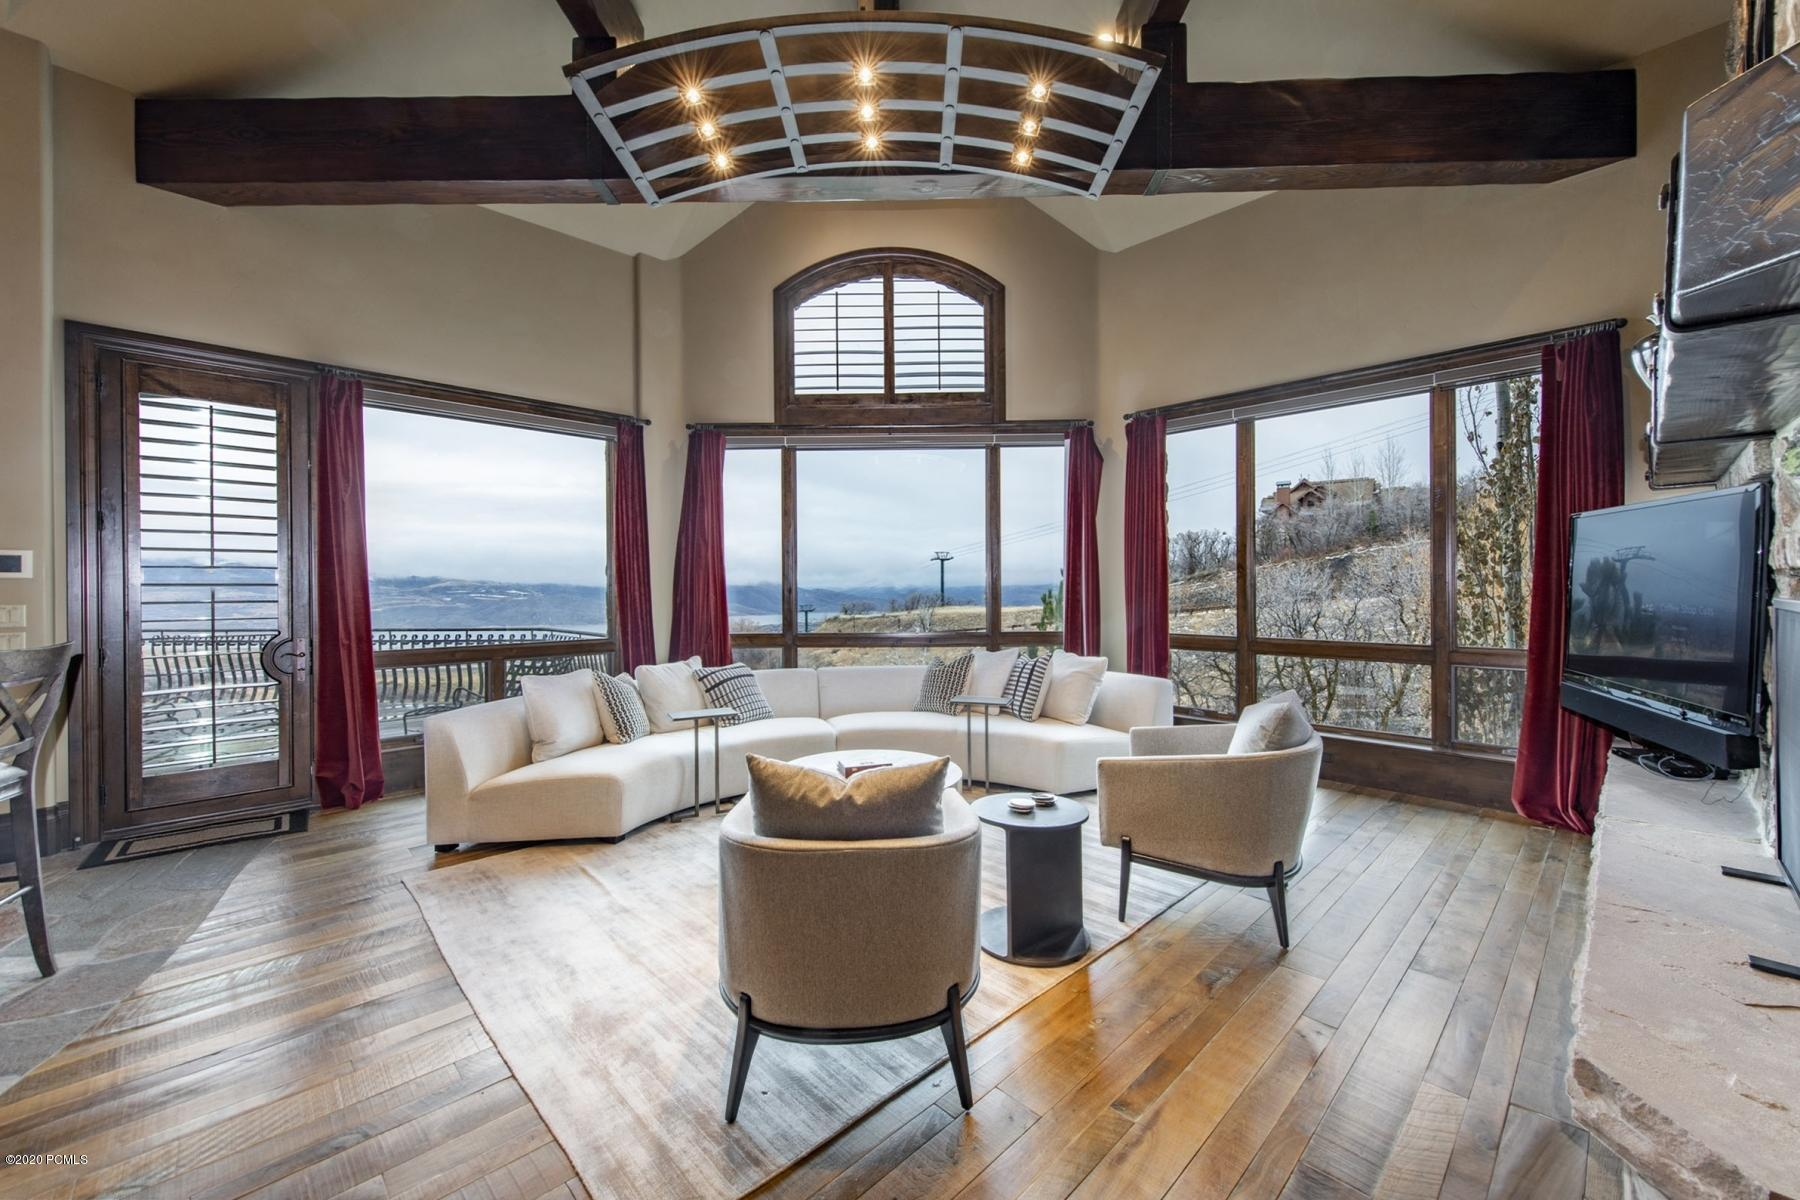 2558 Deer Hollow Road, Park City, Utah 84060, 5 Bedrooms Bedrooms, ,6 BathroomsBathrooms,Single Family,For Sale,Deer Hollow,20190109112430415765000000